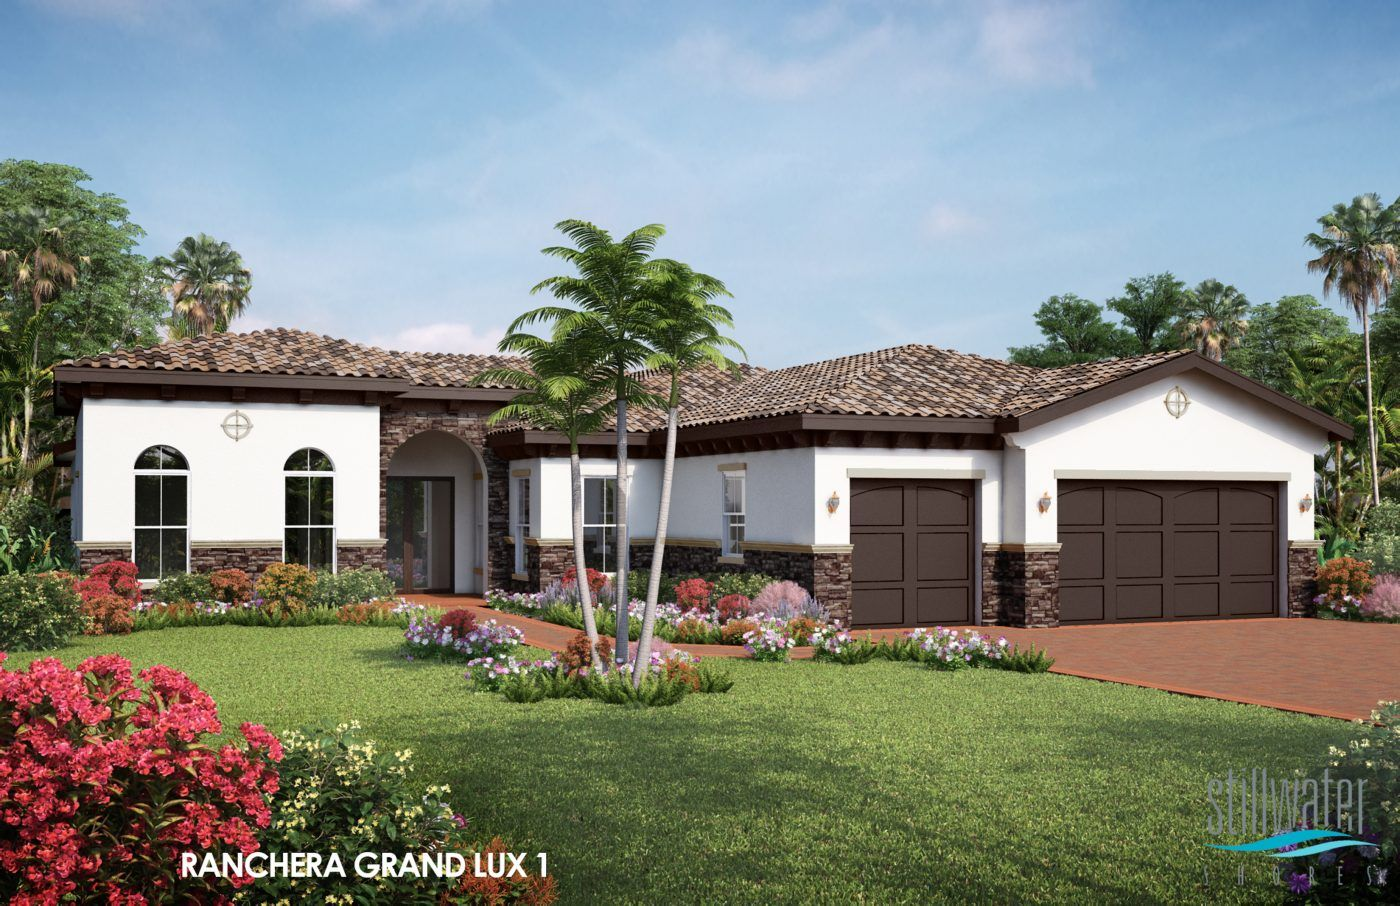 Single Family for Active at Stillwater Shores By Kennedy Homes - Ranchera Grand Lux 5470 Sw 70th Avenue Davie, Florida 33314 United States